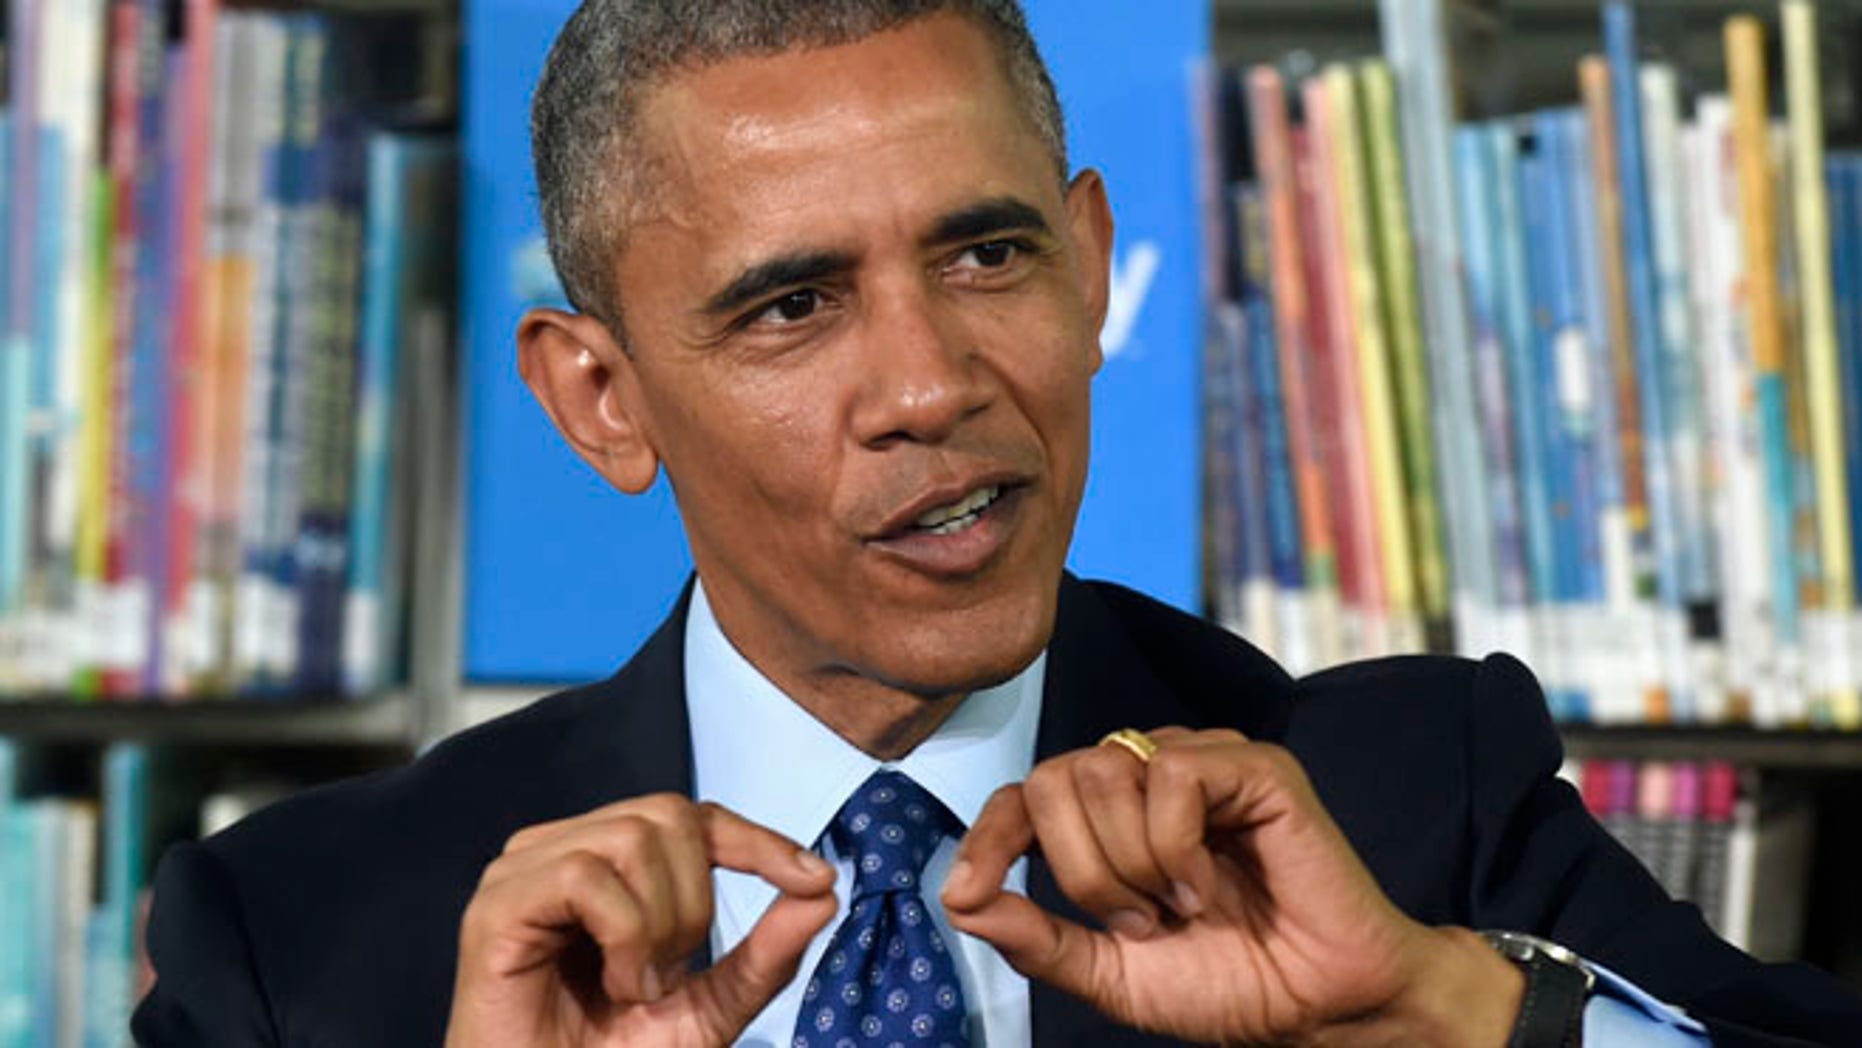 """Apr. 20, 2015: President Barack Obama speaks at Anacostia Library in Washington as he participates in a live """"virtual field trip"""" with middle school students to announce two initiatives to improve education through digital connectivity. (AP)"""